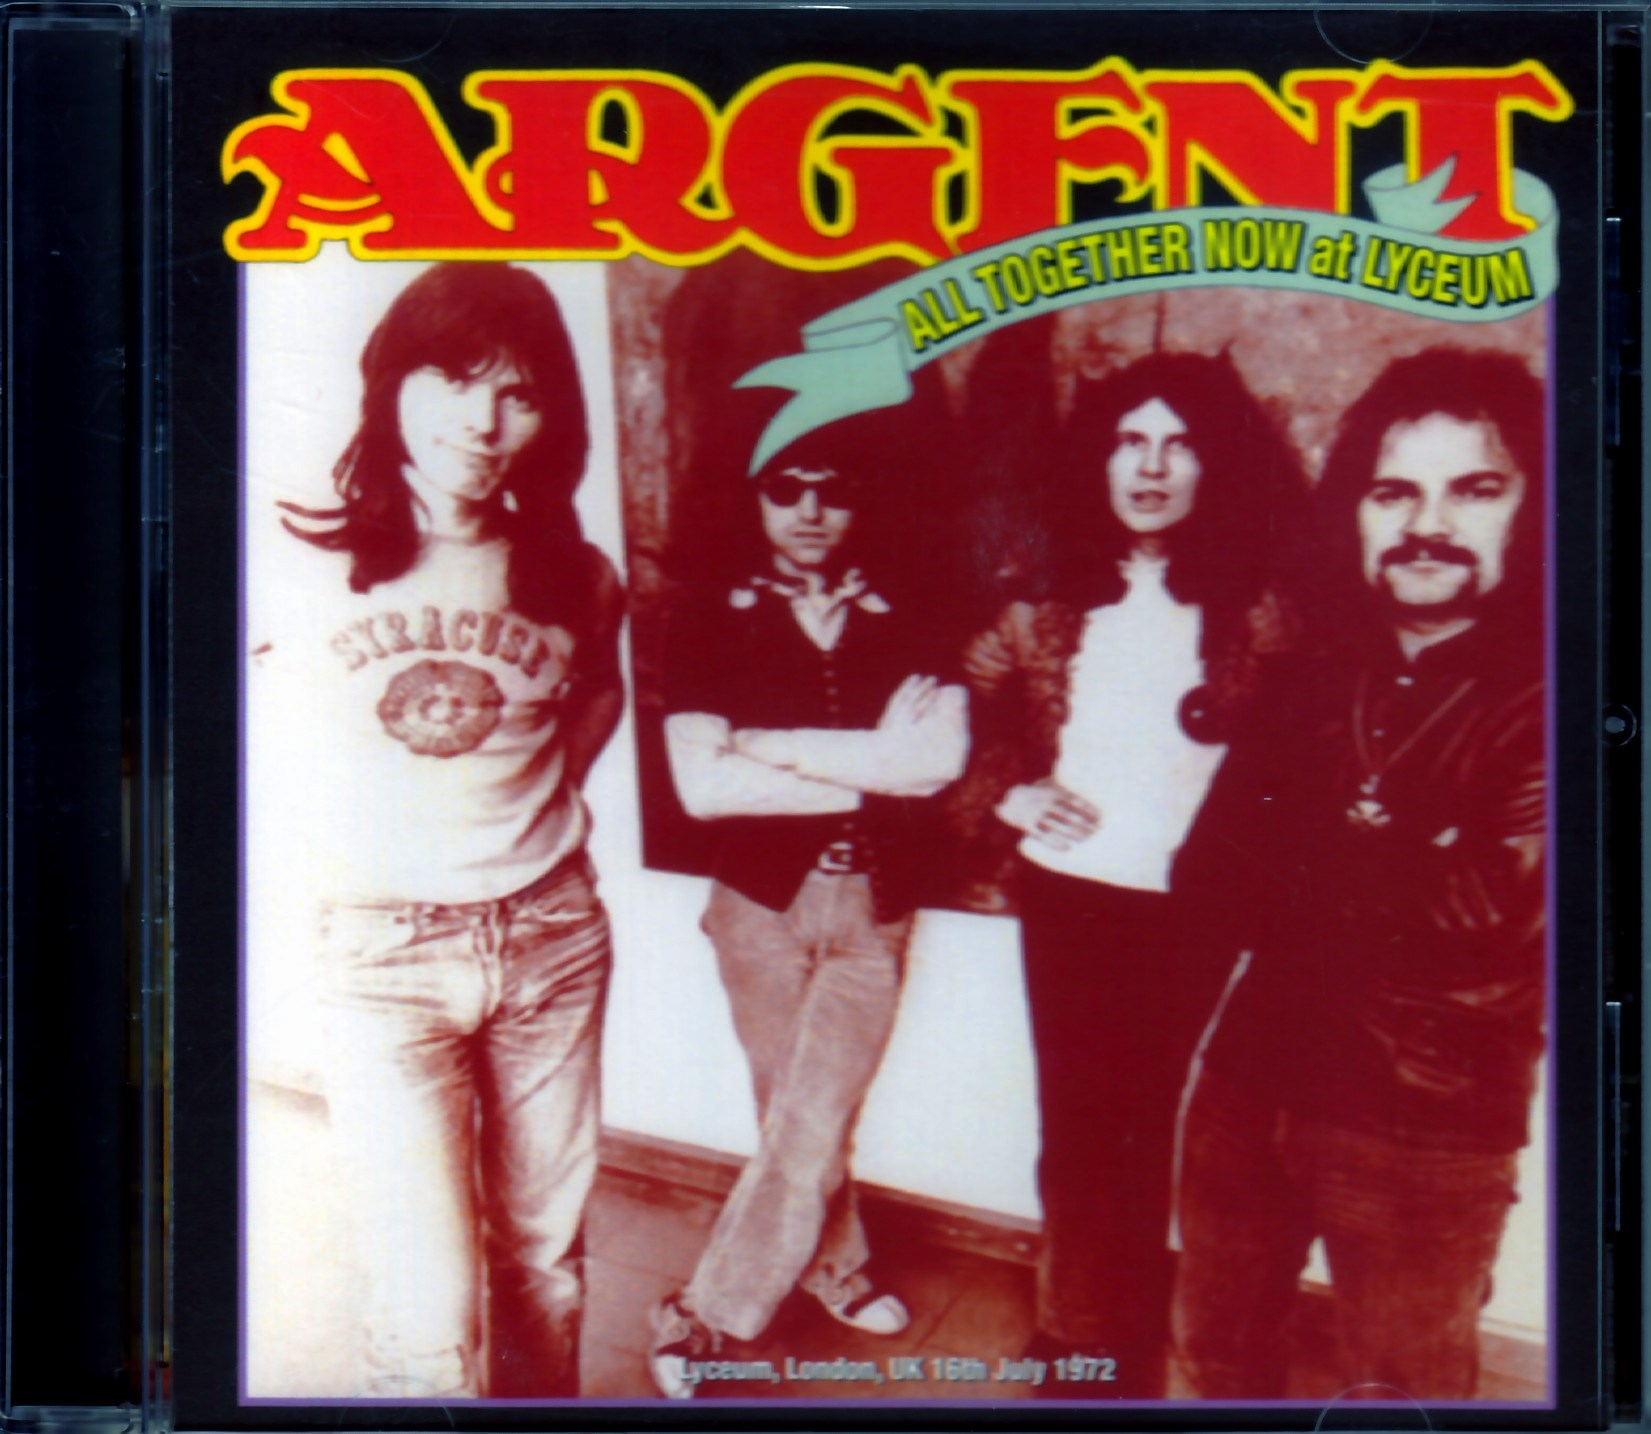 Argent アージェント/London,UK 1972